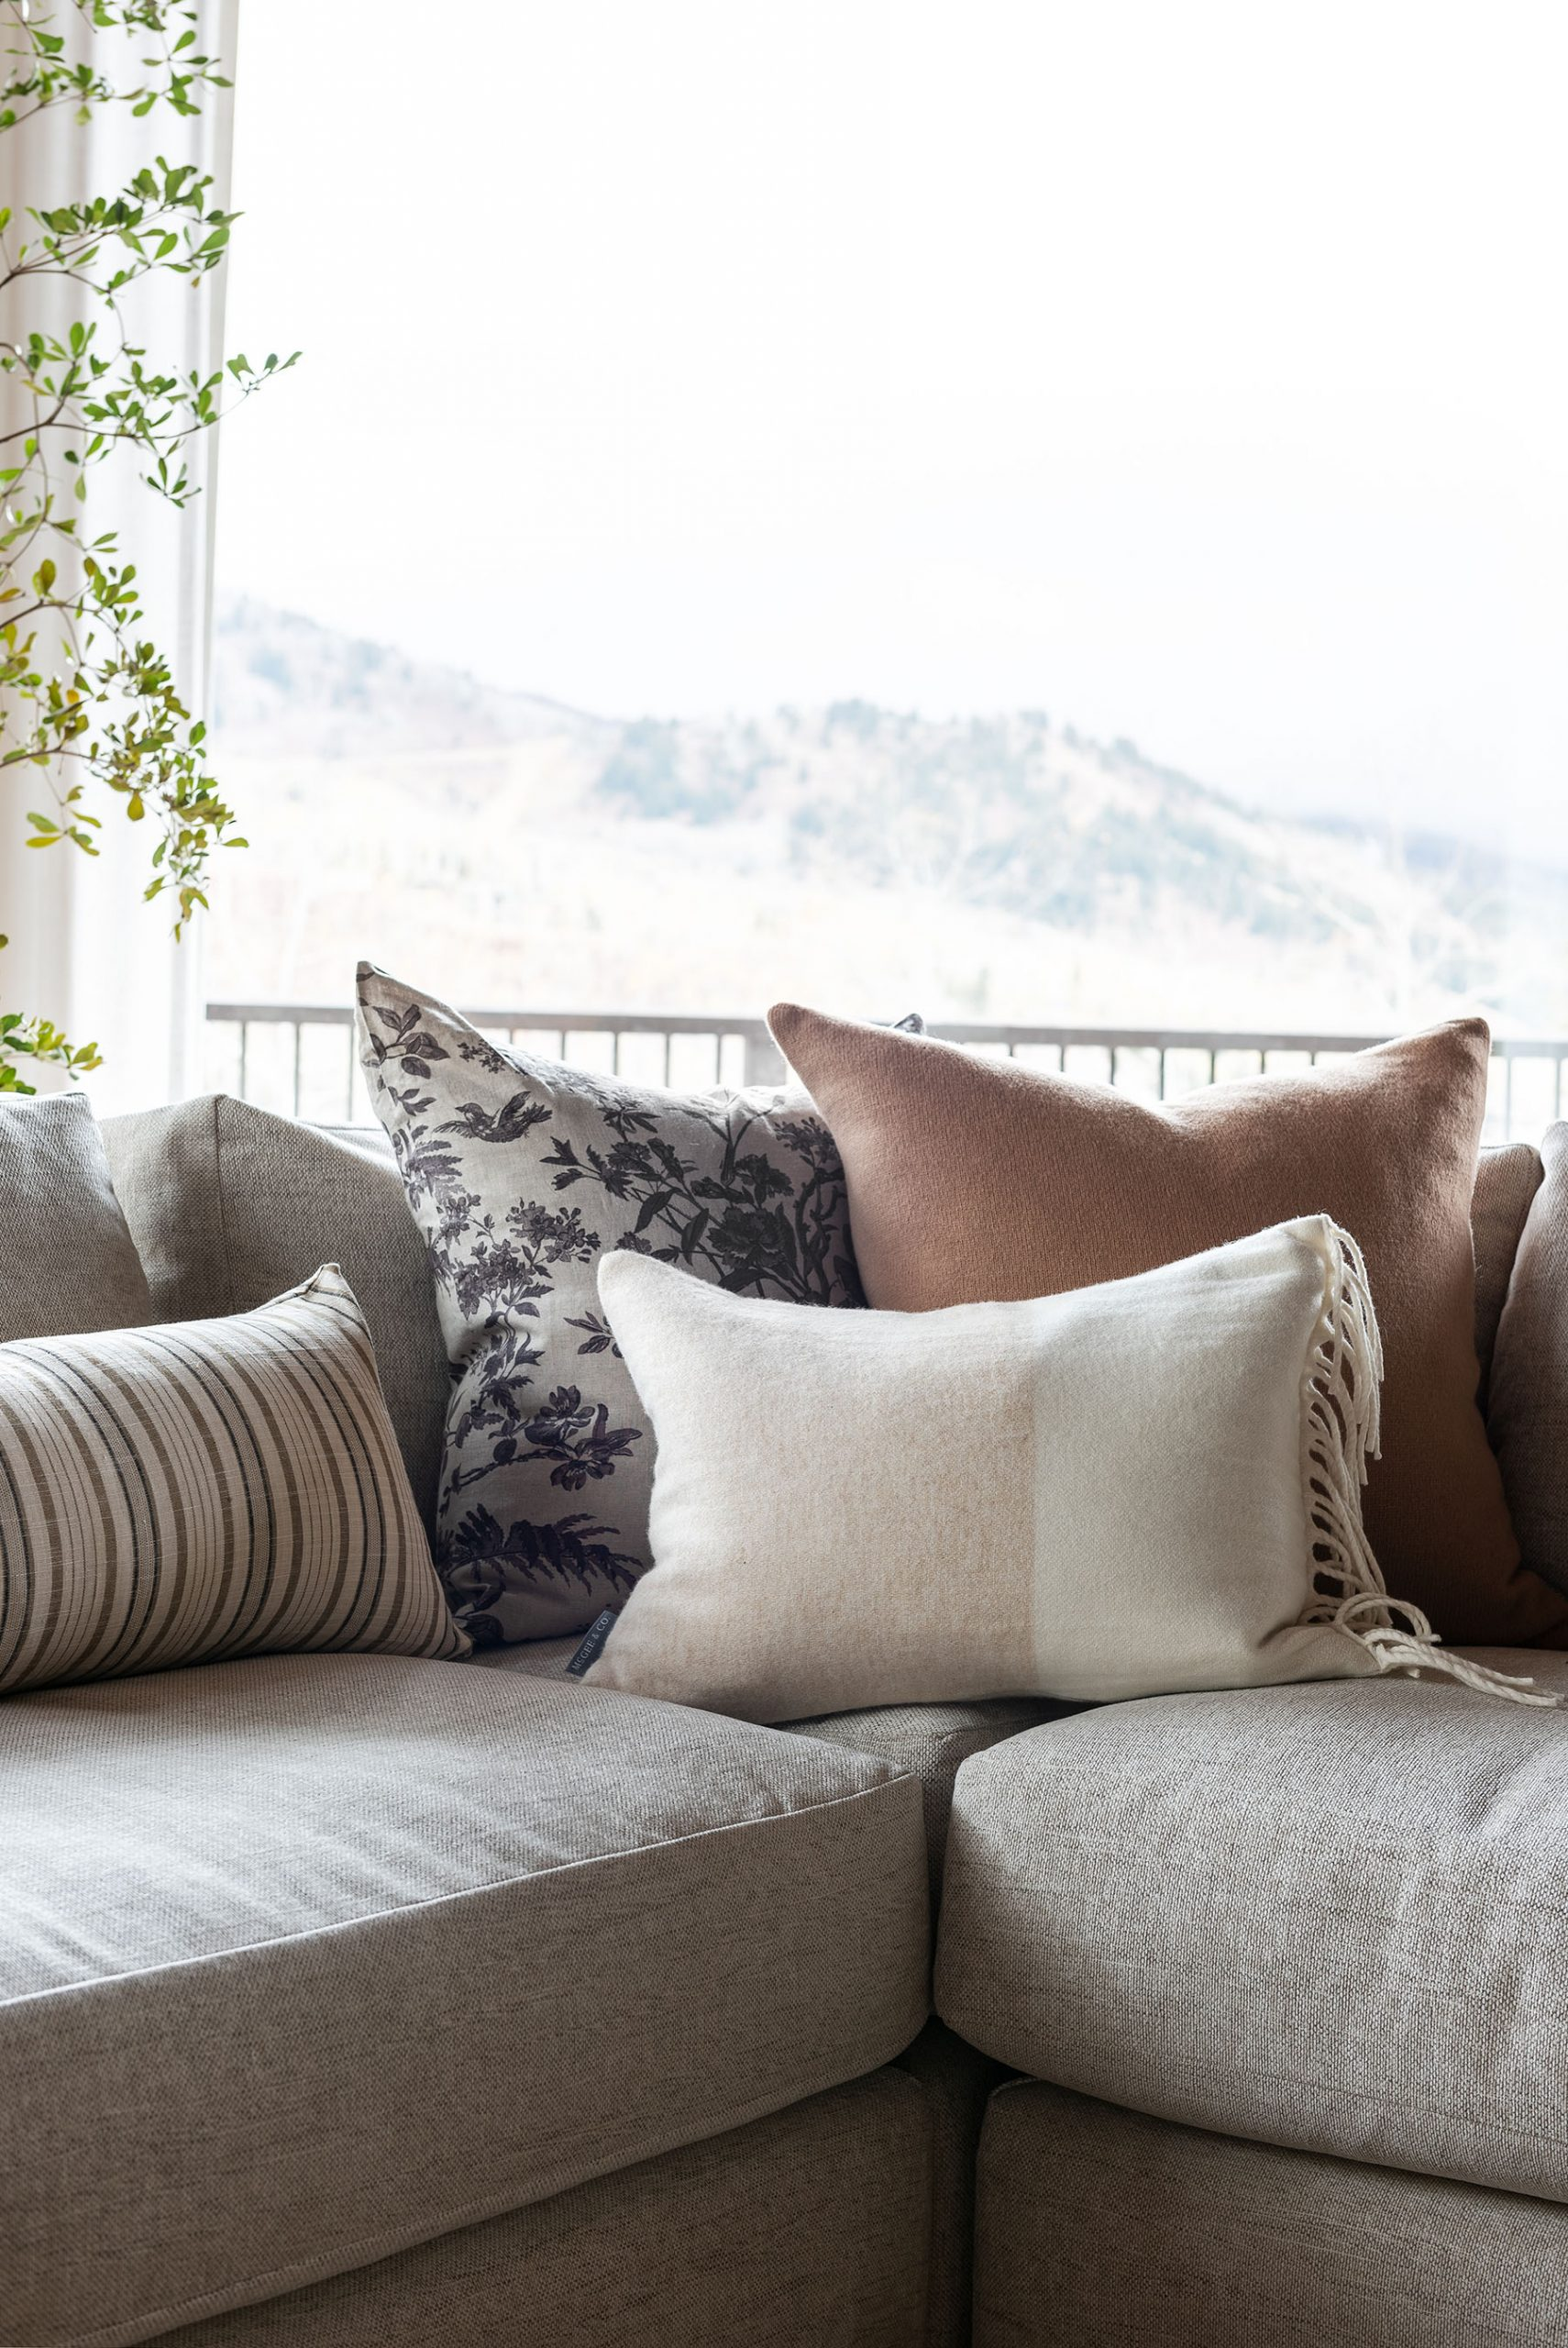 How To Style Pillows On A Sectional Studio Mcgee